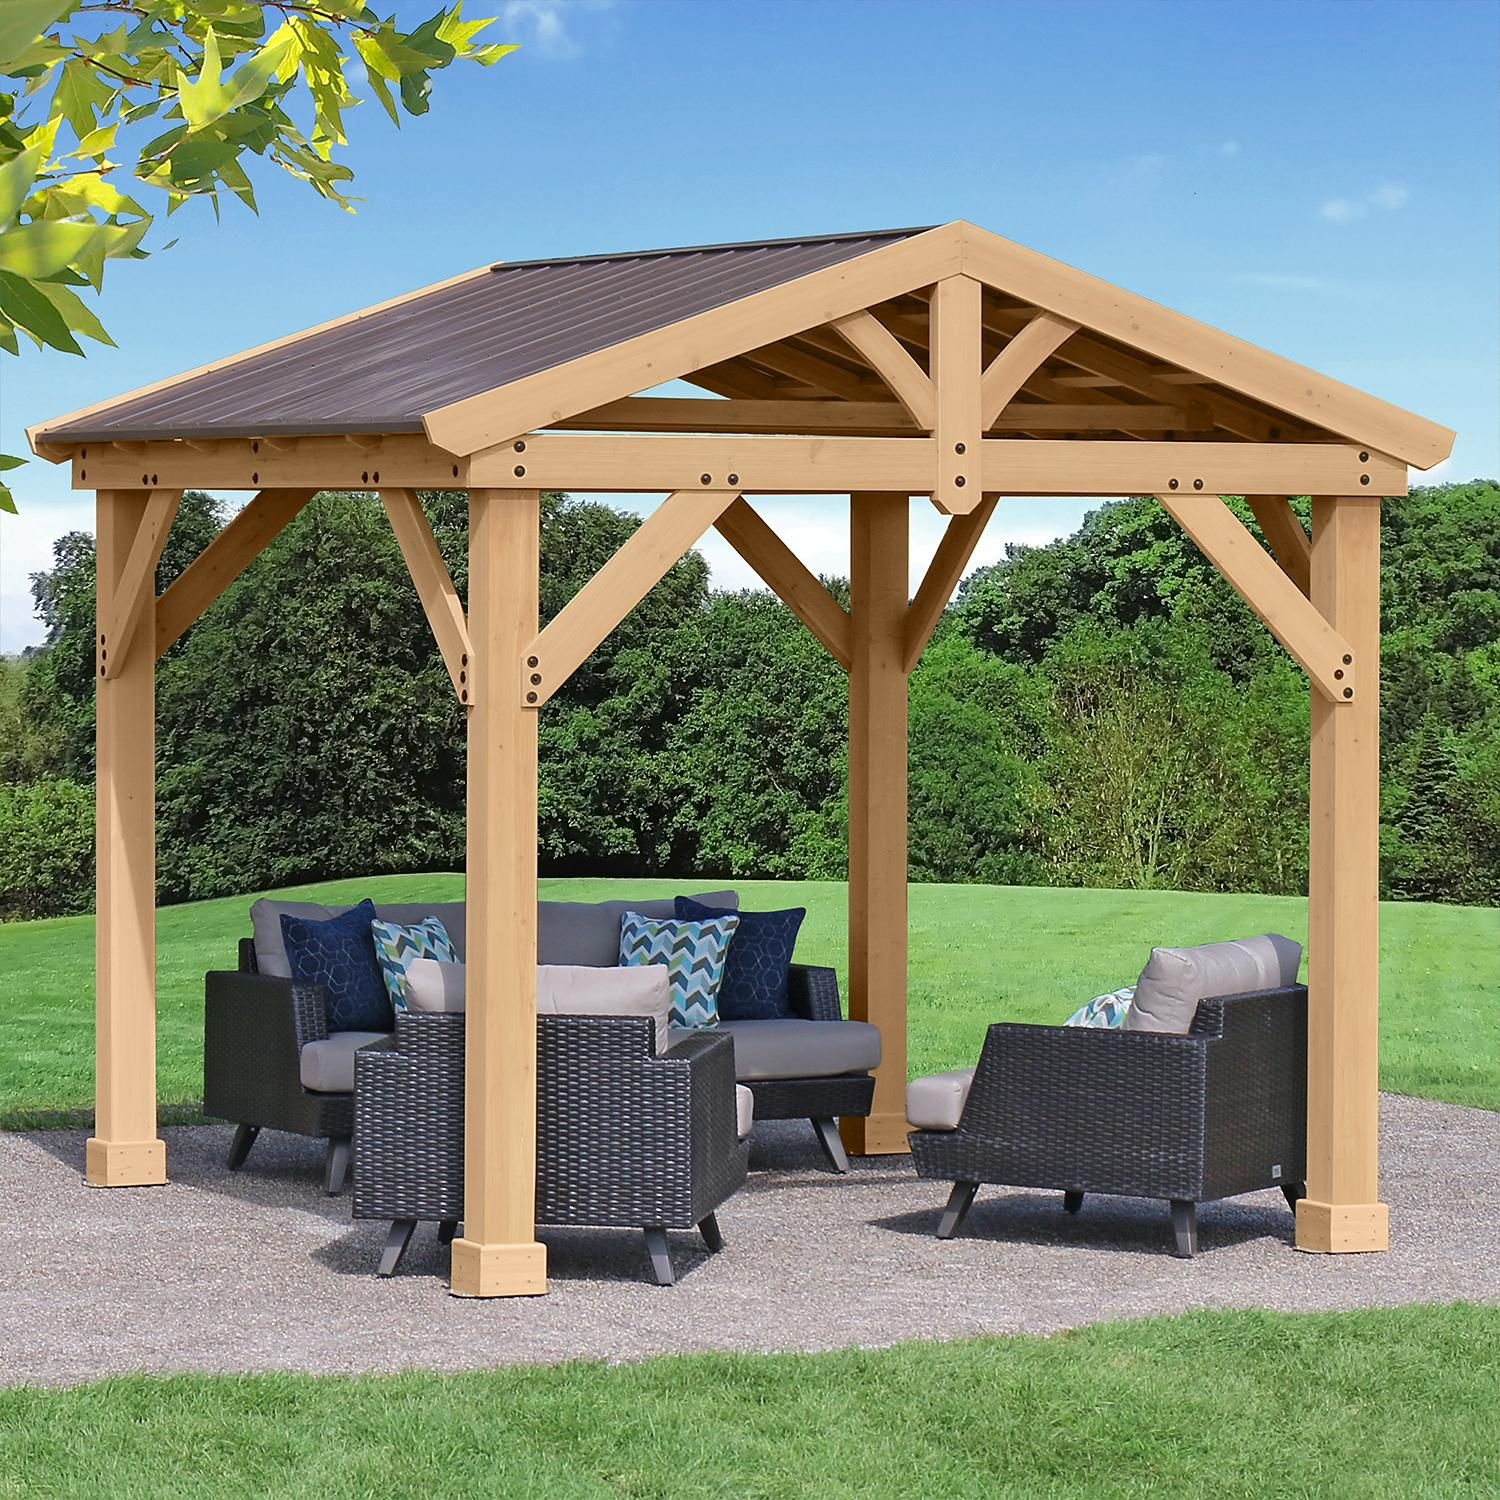 Yardistry 10 X 10 All Cedar Pavilion With Aluminum Roof Sam S Club In 2020 Backyard Aluminum Roof Outdoor Patio